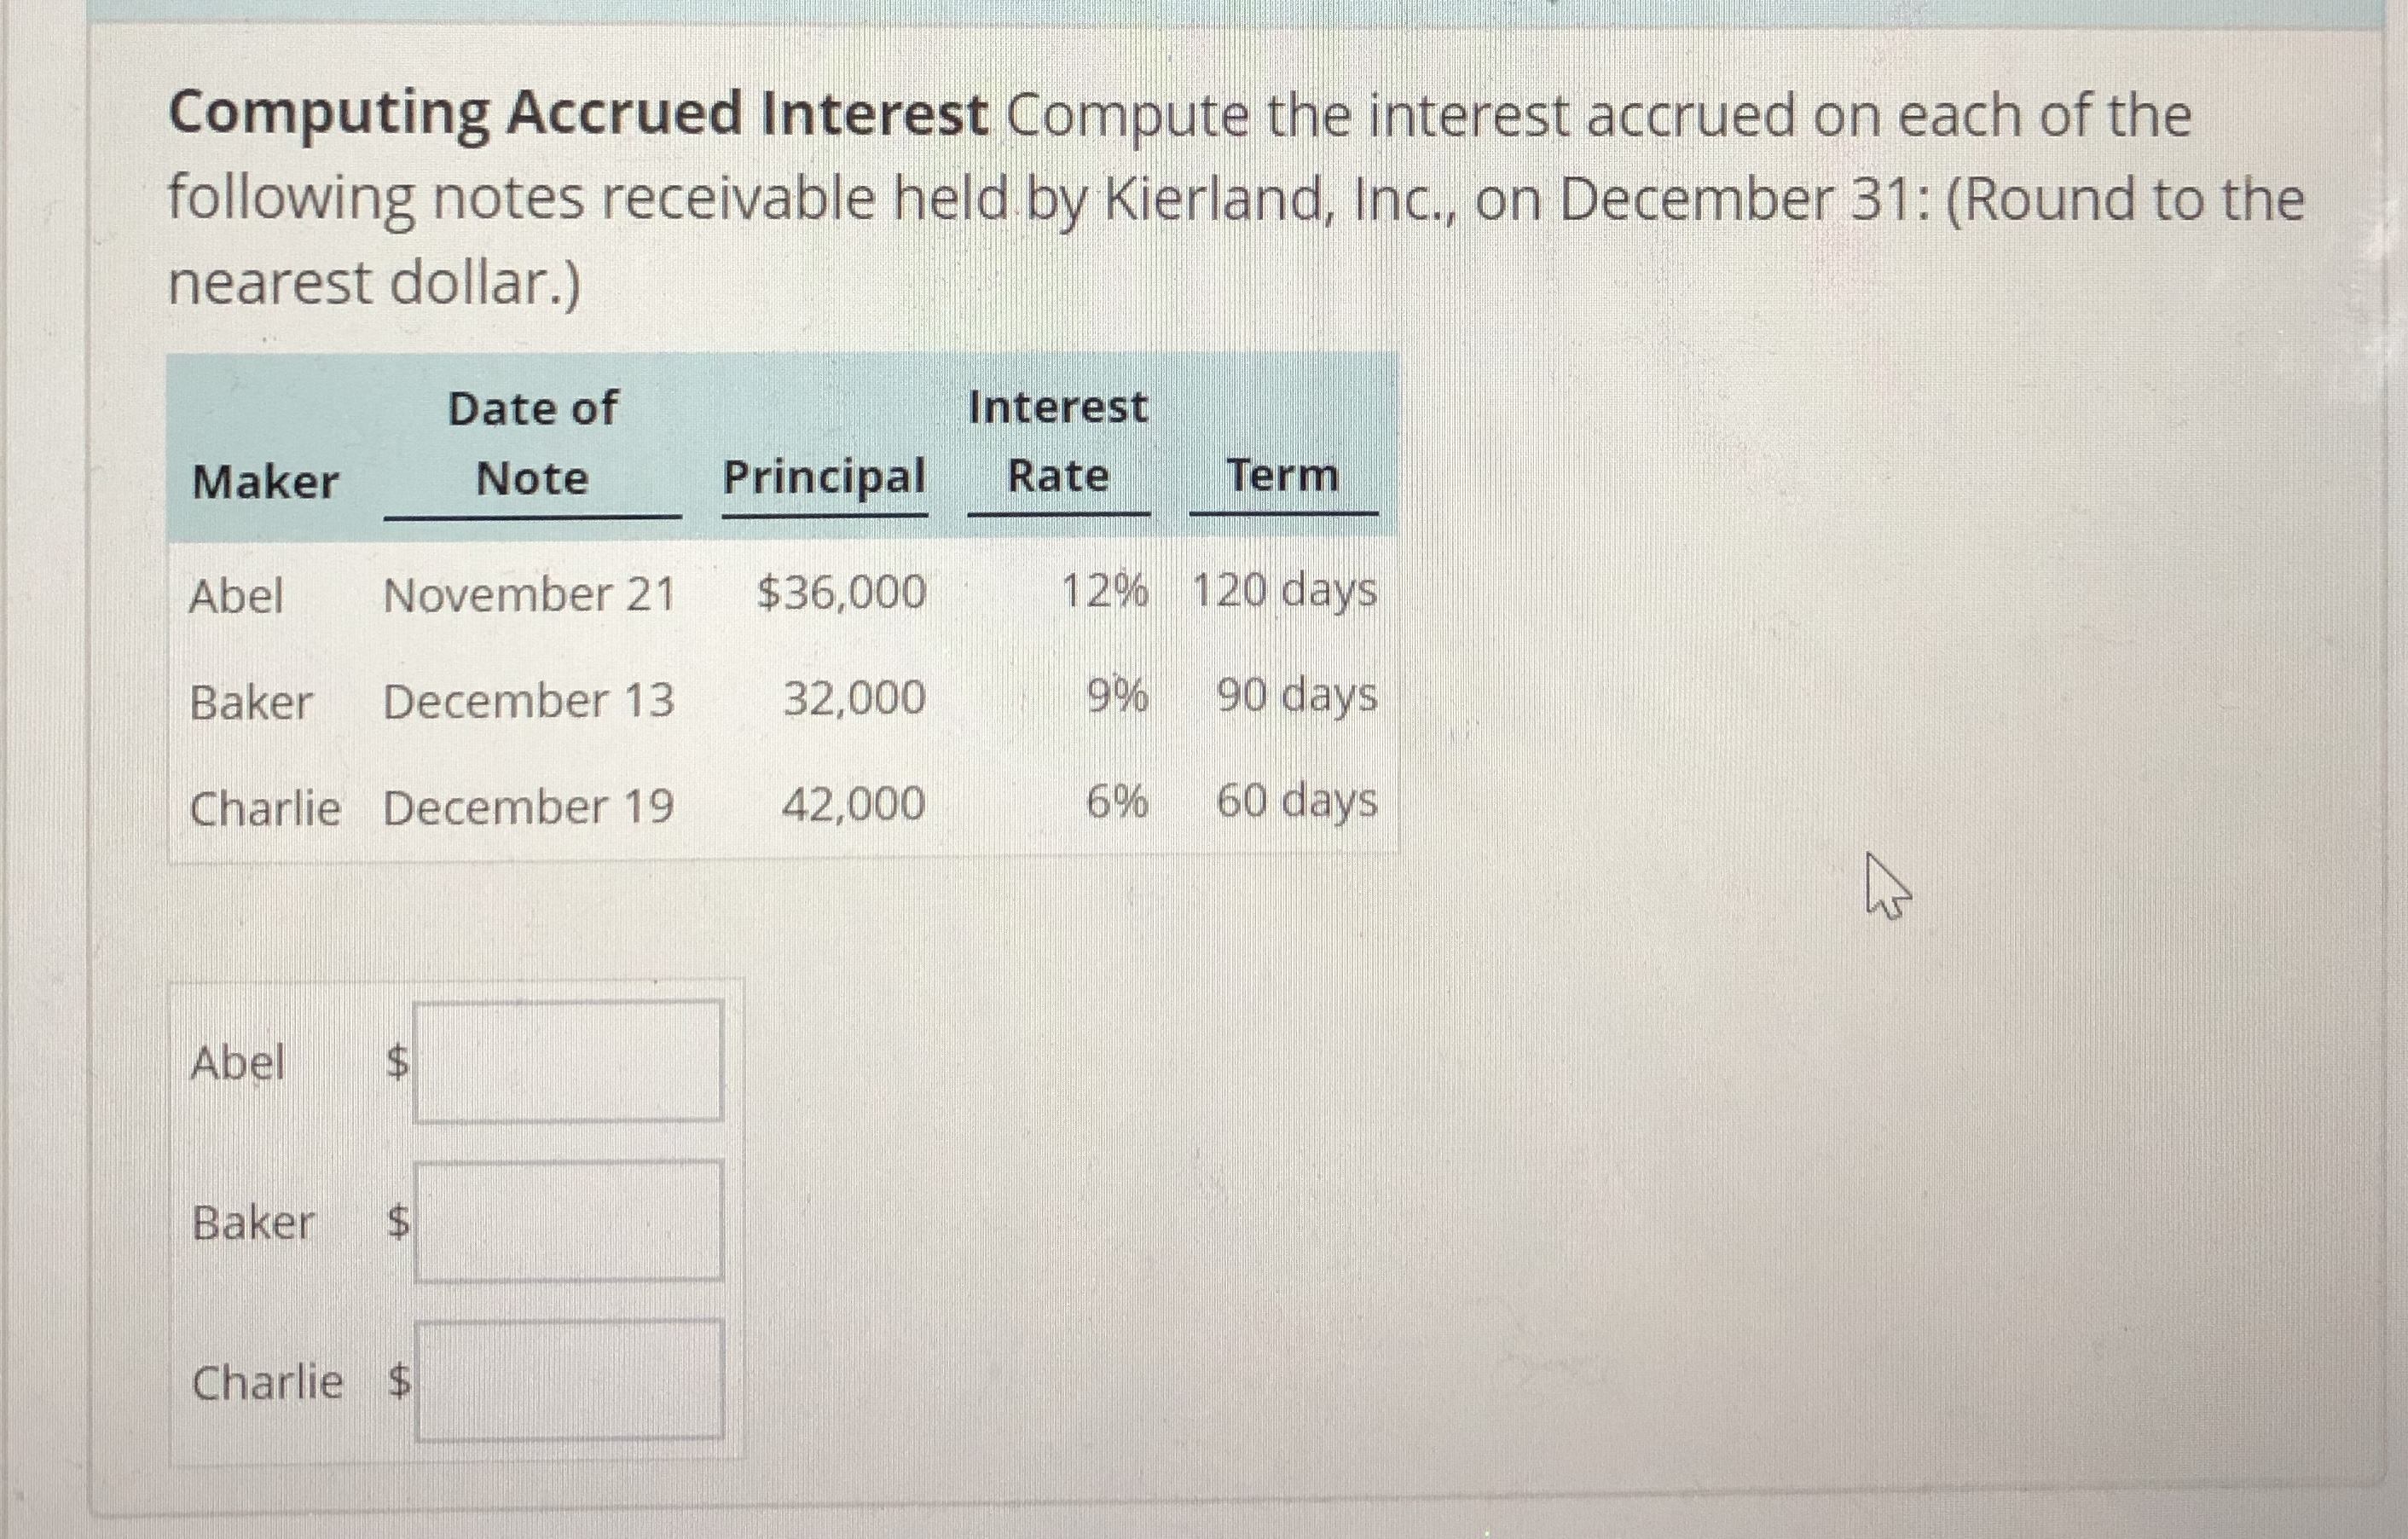 Computing Accrued Interest Compute the interest accrued on each of the following notes receivable held by Kierland, Inc, on December 31: (Round to the nearest dollar.) Date of Interest Principal RateTerm Maker Abel November 21 $36,000 12% 120 days Baker December 13 32,000 996 90 days! Charlie December 19 42,000 6% 60 days! Note Abel Baker $ Charlie